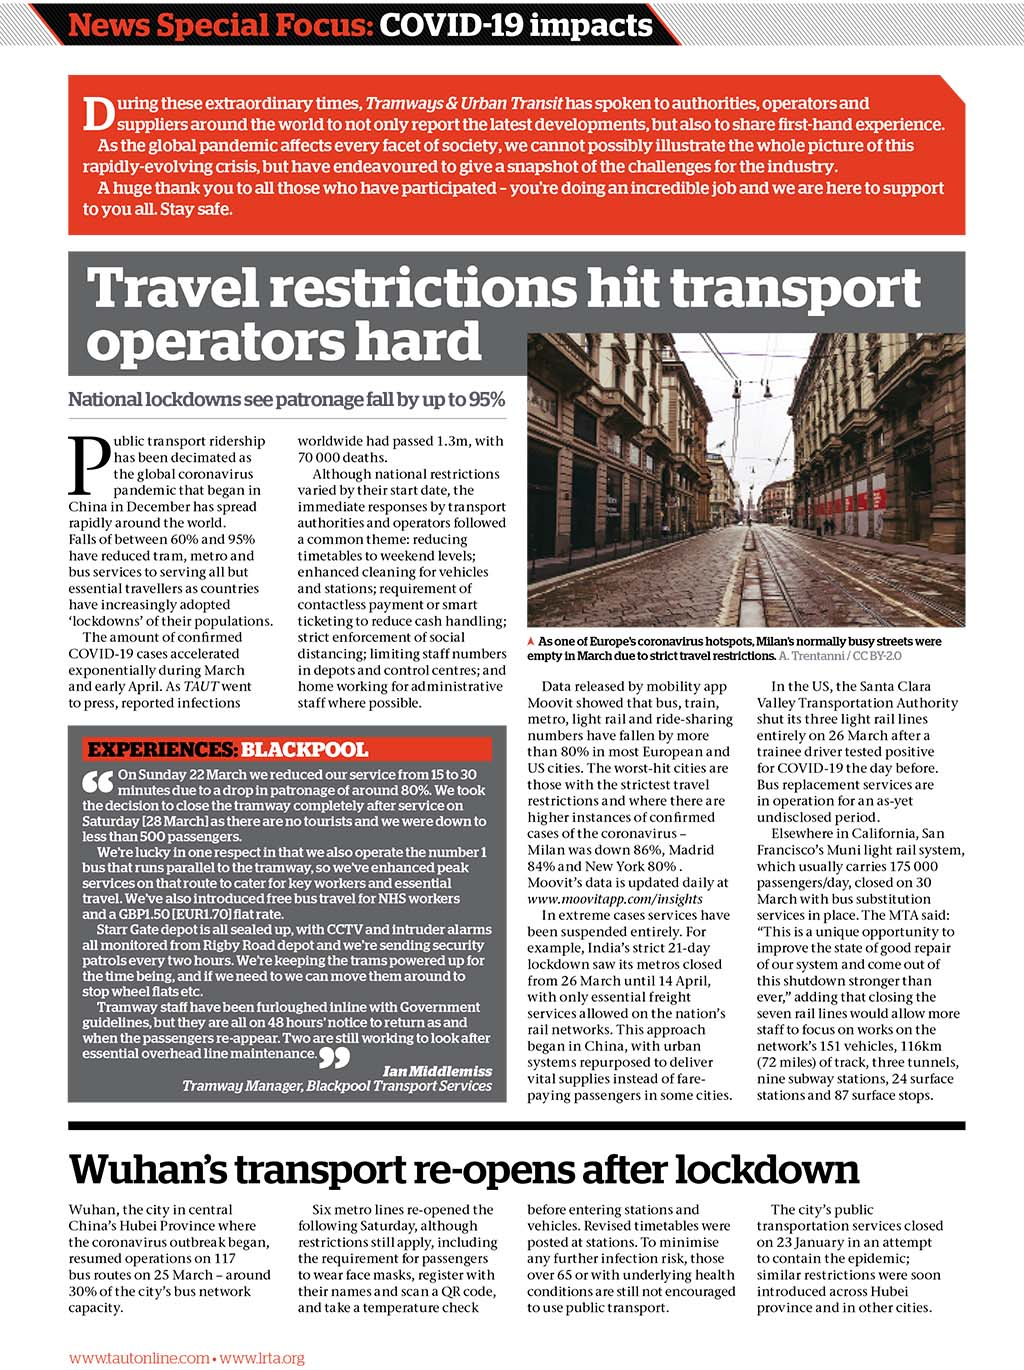 Tramways and Urban Transit May 2020 News Special